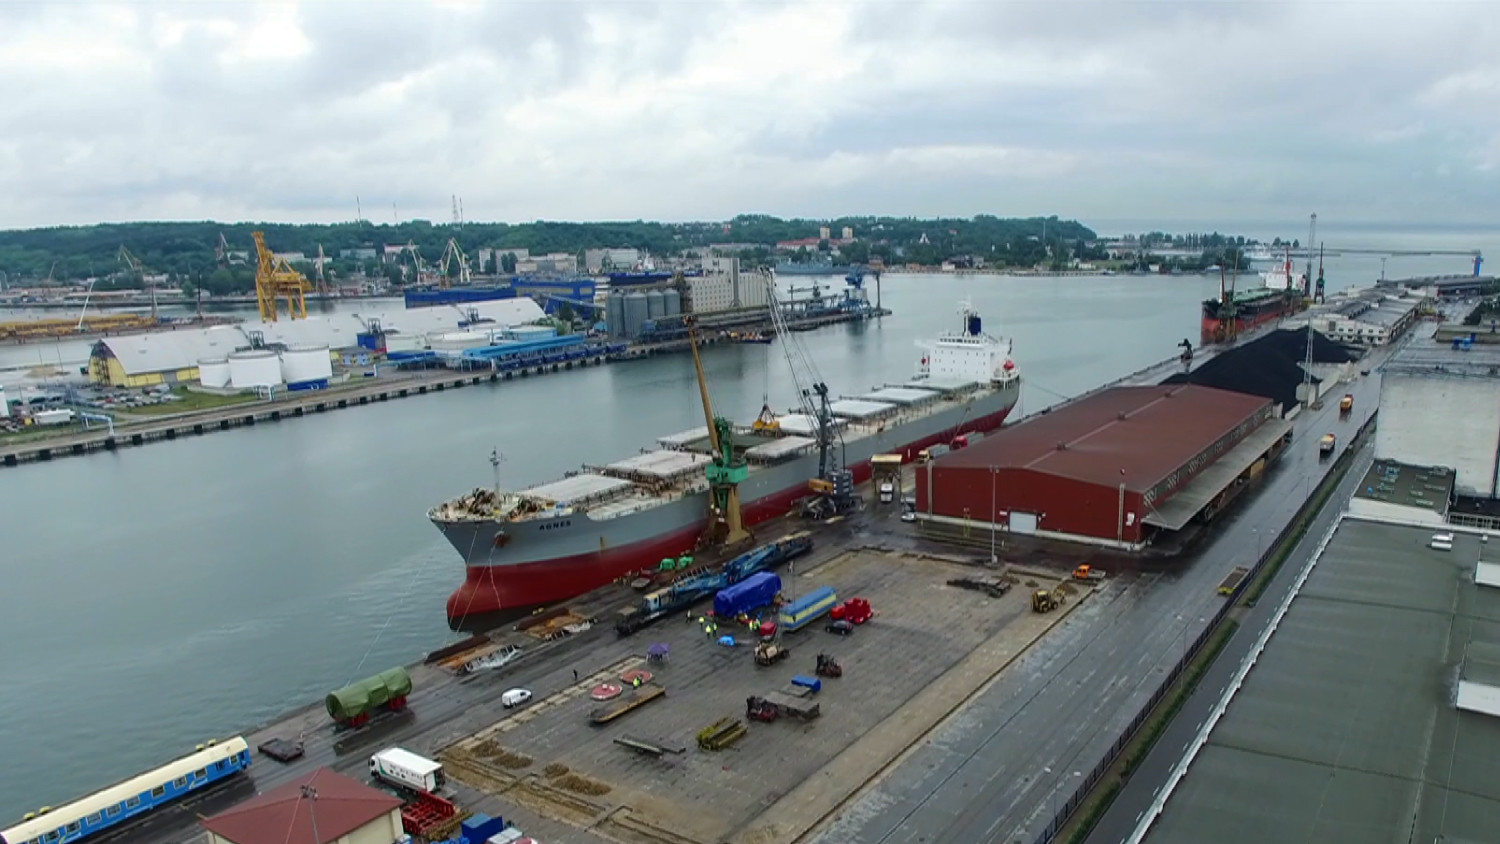 Special transport - View of the harbor. Unloading of oversized equipment from a seagoing ship for subsequent transhipment by rail.